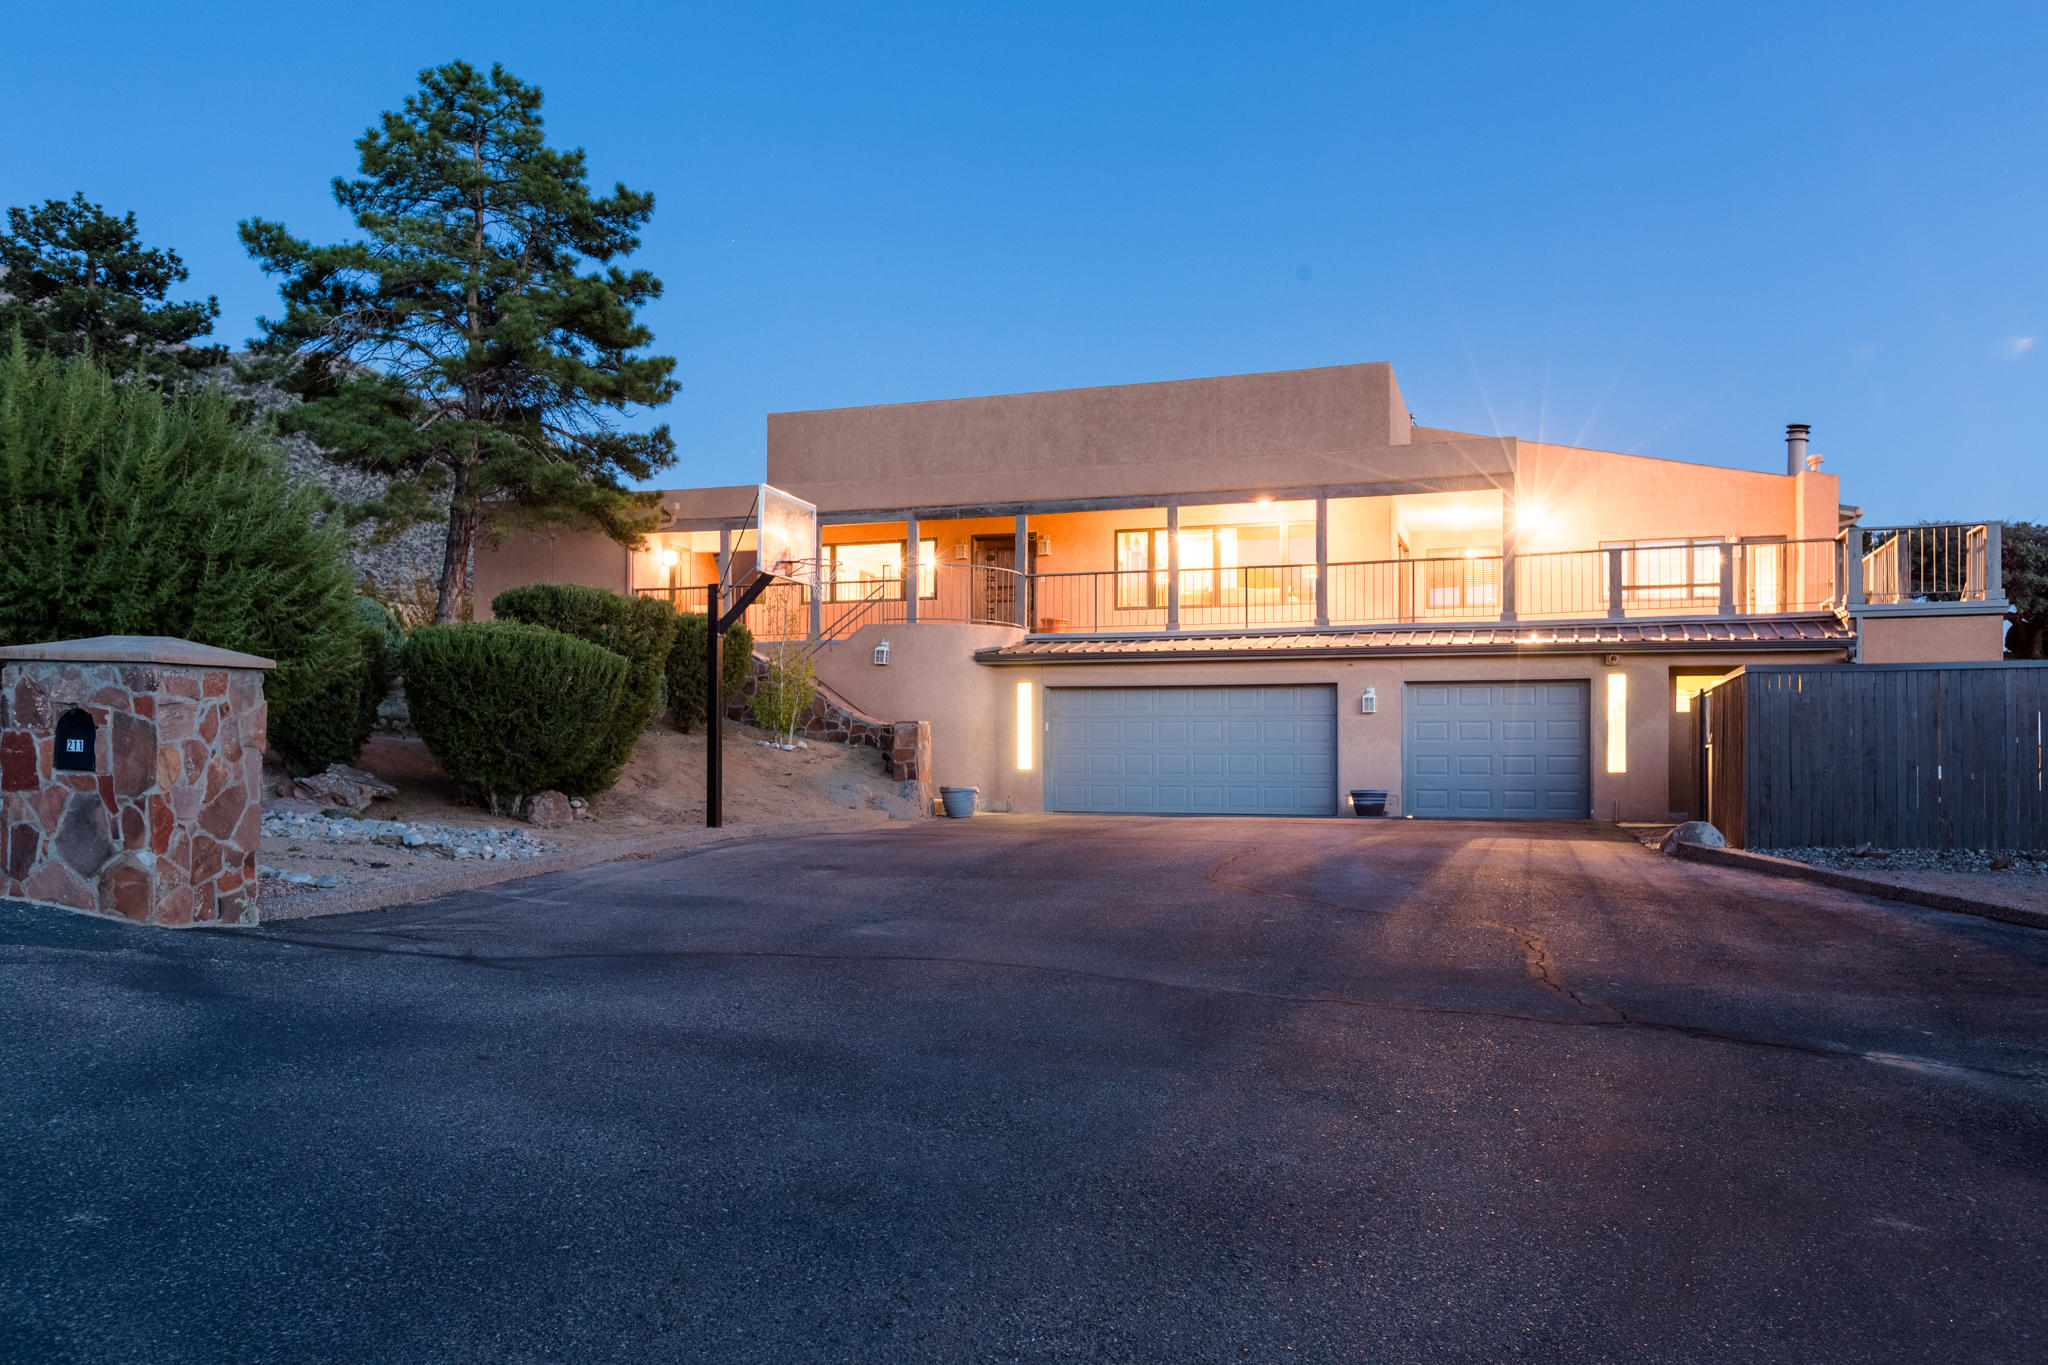 211 SPRING CREEK DRIVE NE, ALBUQUERQUE, NM 87122